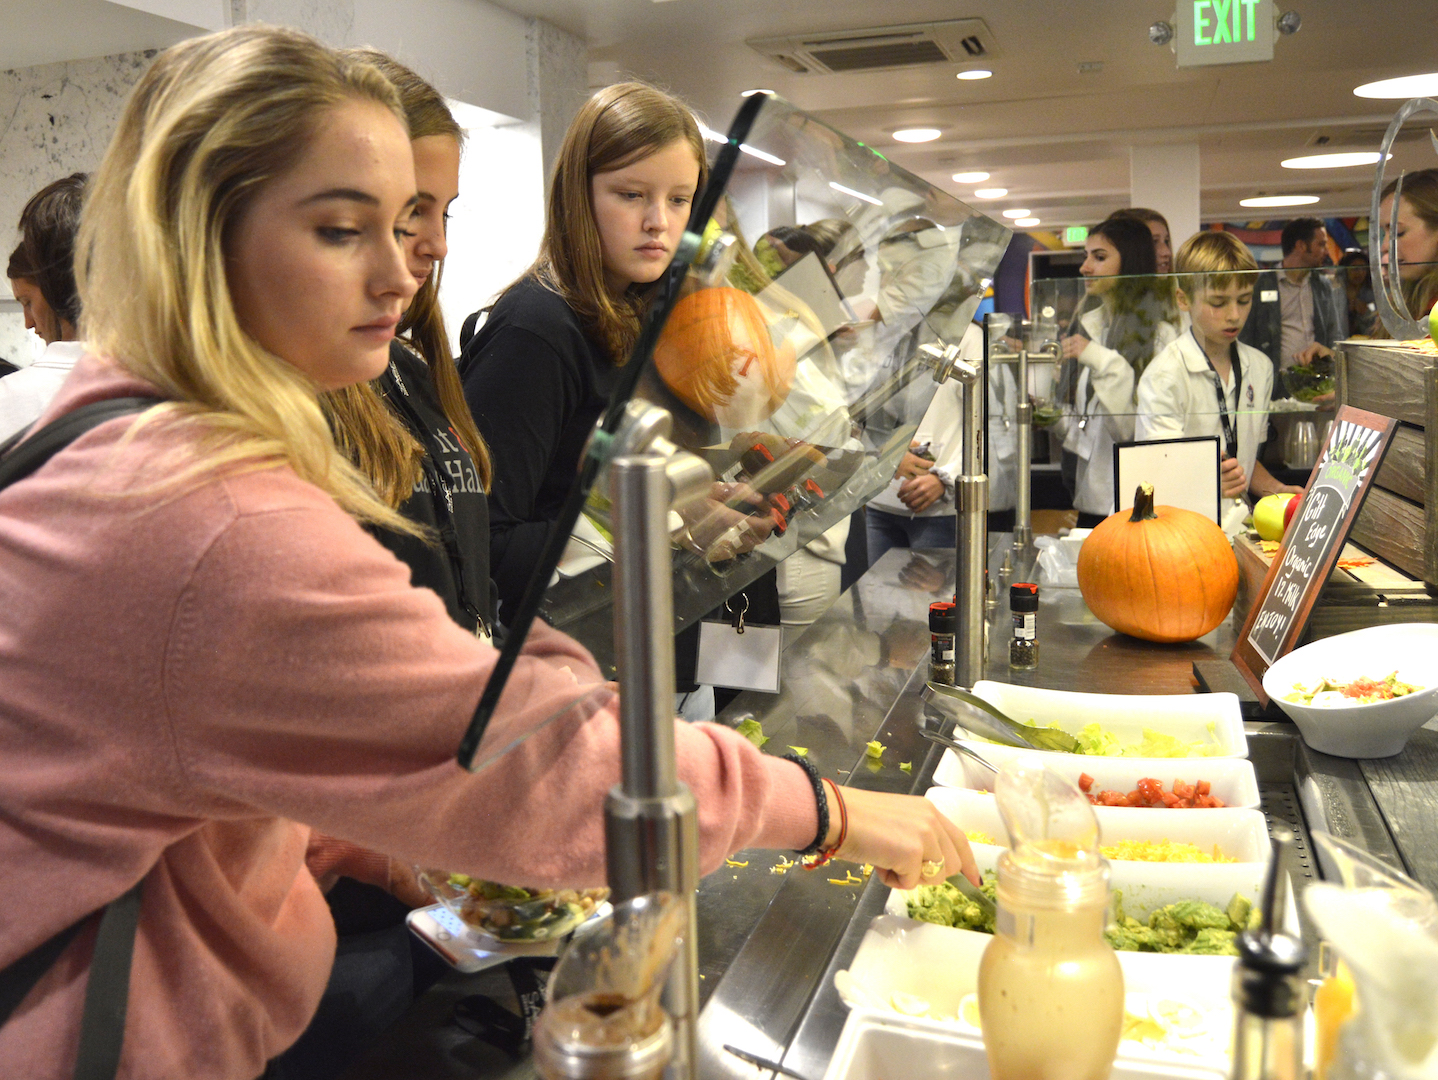 Senior Caroline Schulberg adds avocado chunks and other toppings to her salad from the cafeteria's build-your-own salad bar. Students wear lanyards with their name and photo on them to show that they have paid for the meal plan.